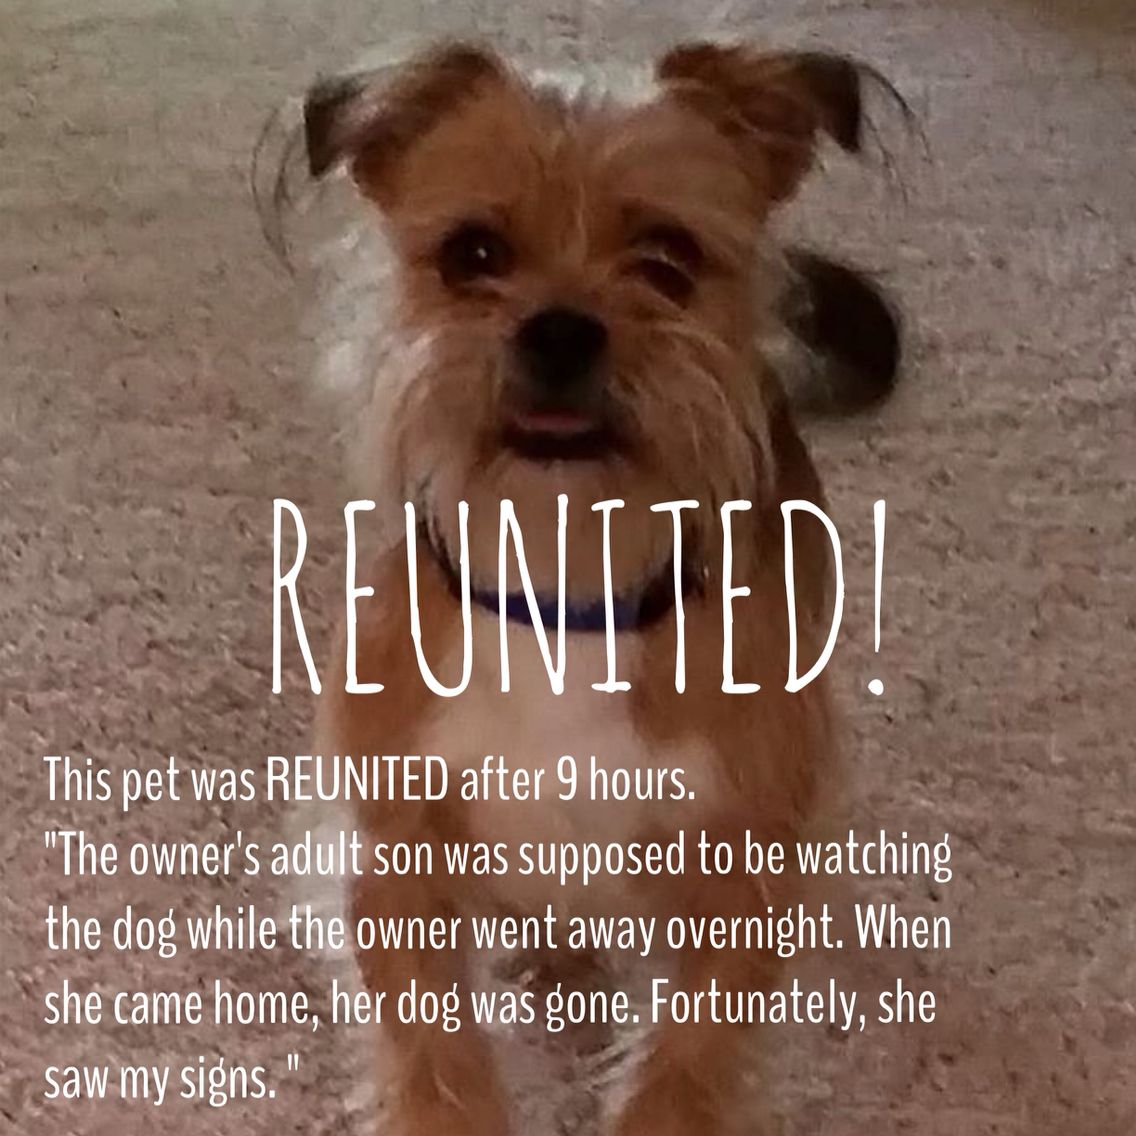 REUNITED! This pet was REUNITED after 9 hours  Found on: Jun